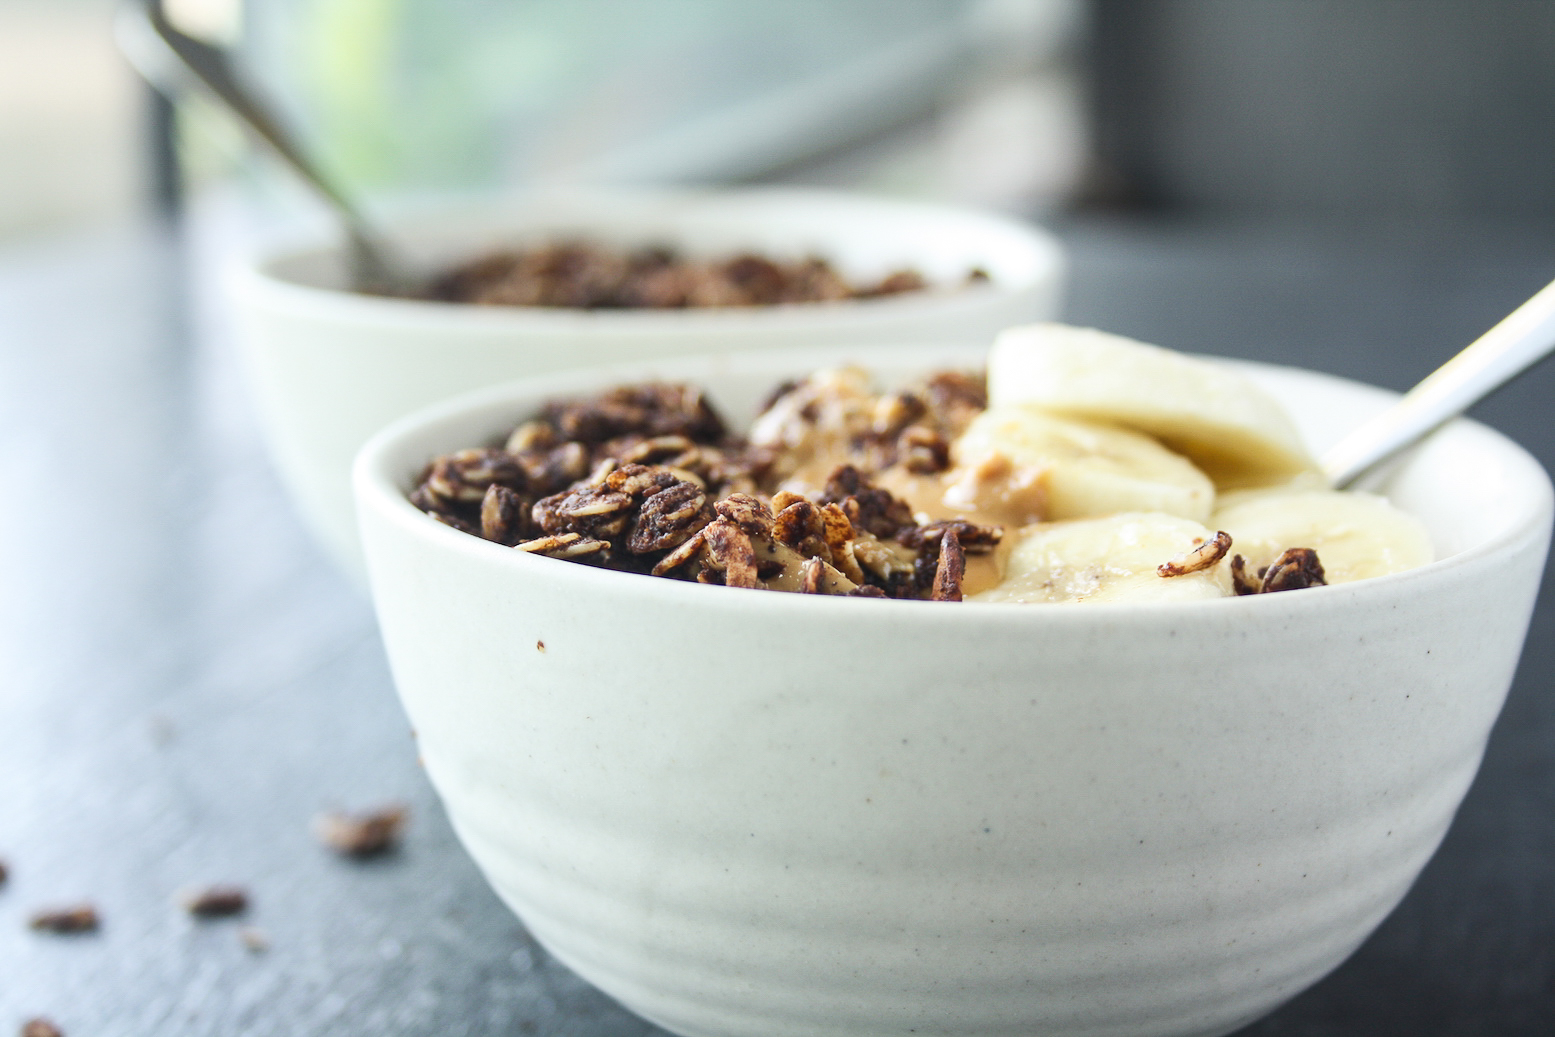 Crispy, chocolate granola with peanut butter and almonds. Gluten-free and easily vegan!